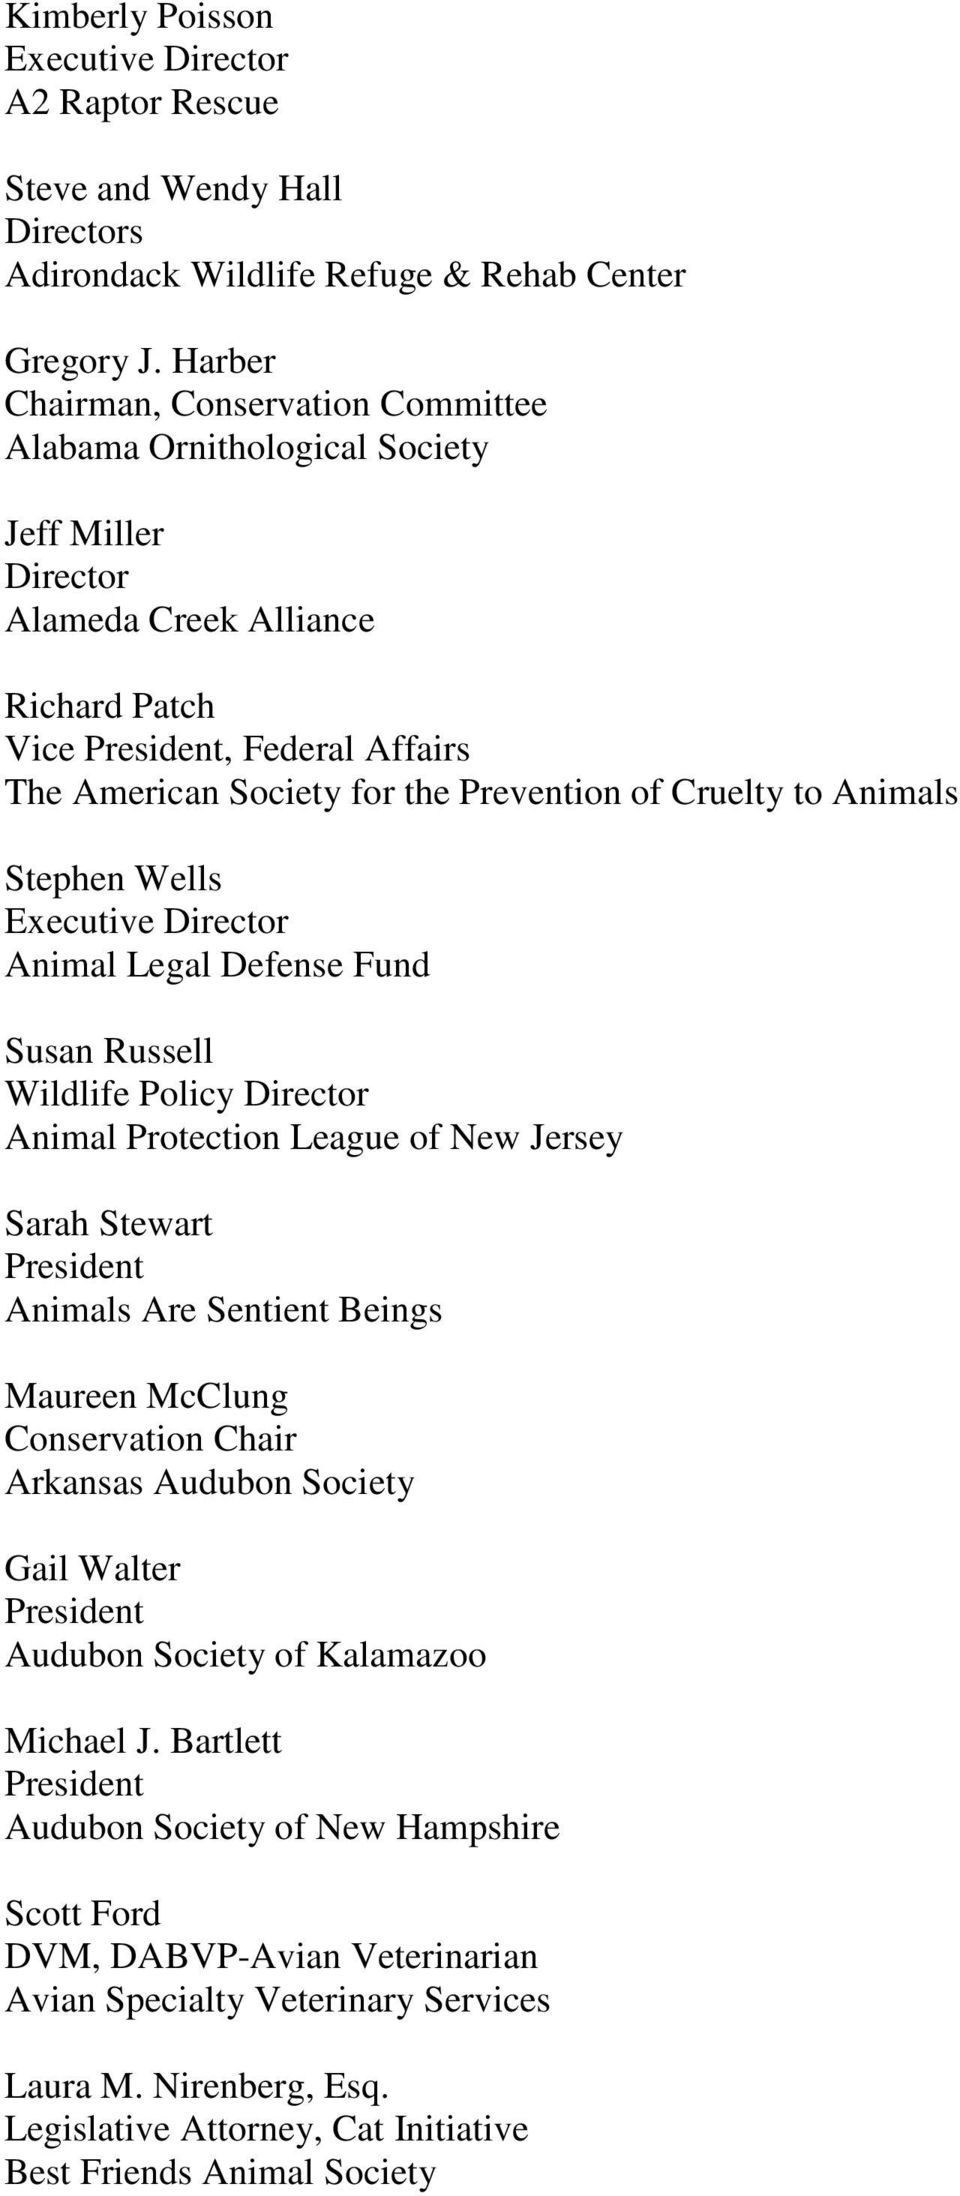 Cruelty to Animals Stephen Wells Animal Legal Defense Fund Susan Russell Wildlife Policy Director Animal Protection League of New Jersey Sarah Stewart Animals Are Sentient Beings Maureen McClung